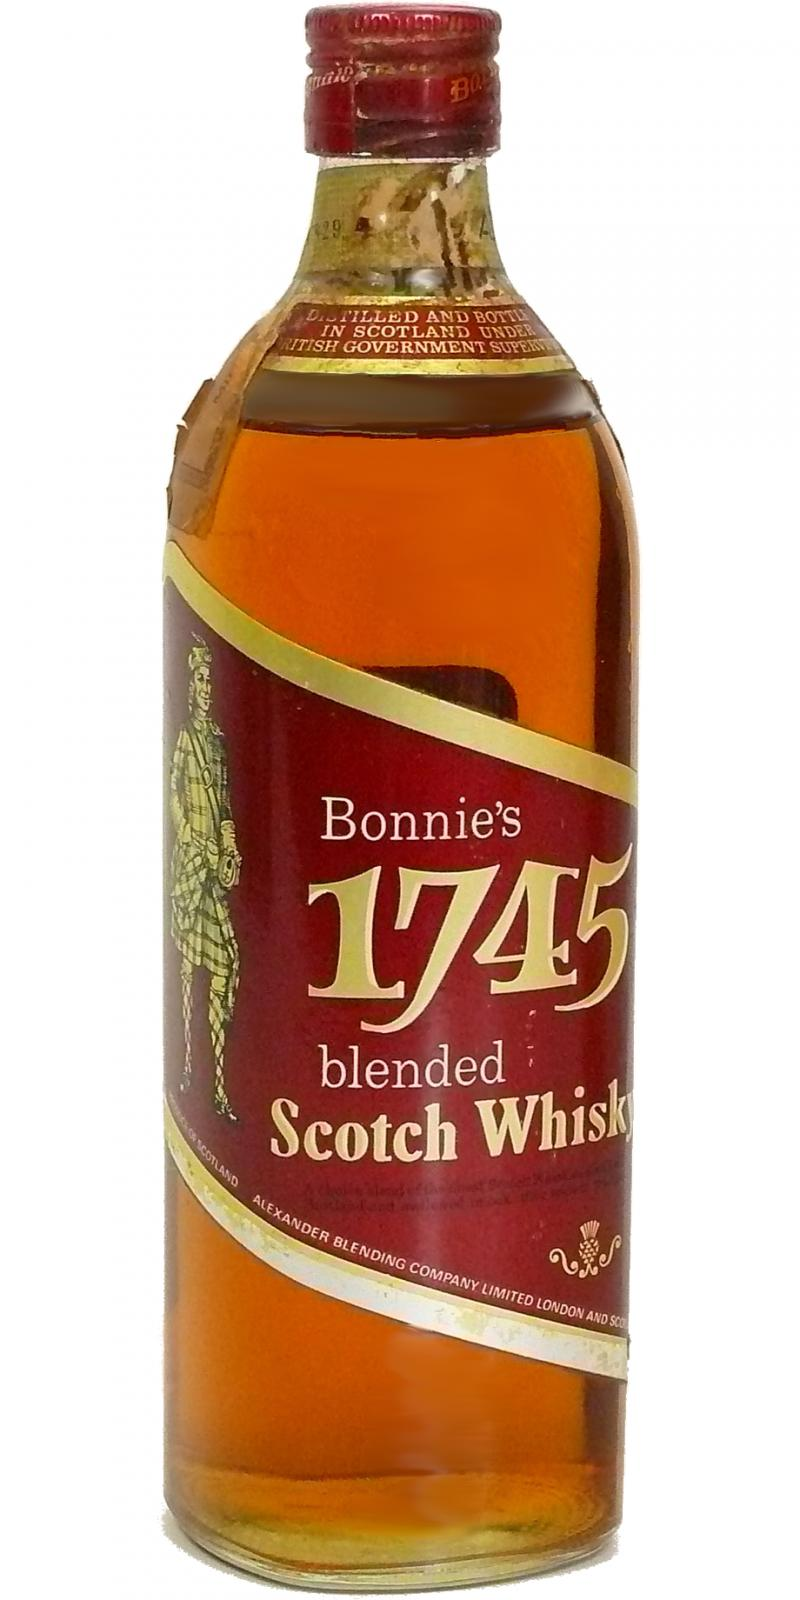 Bonnie's 1745 Blended Scotch Whisky